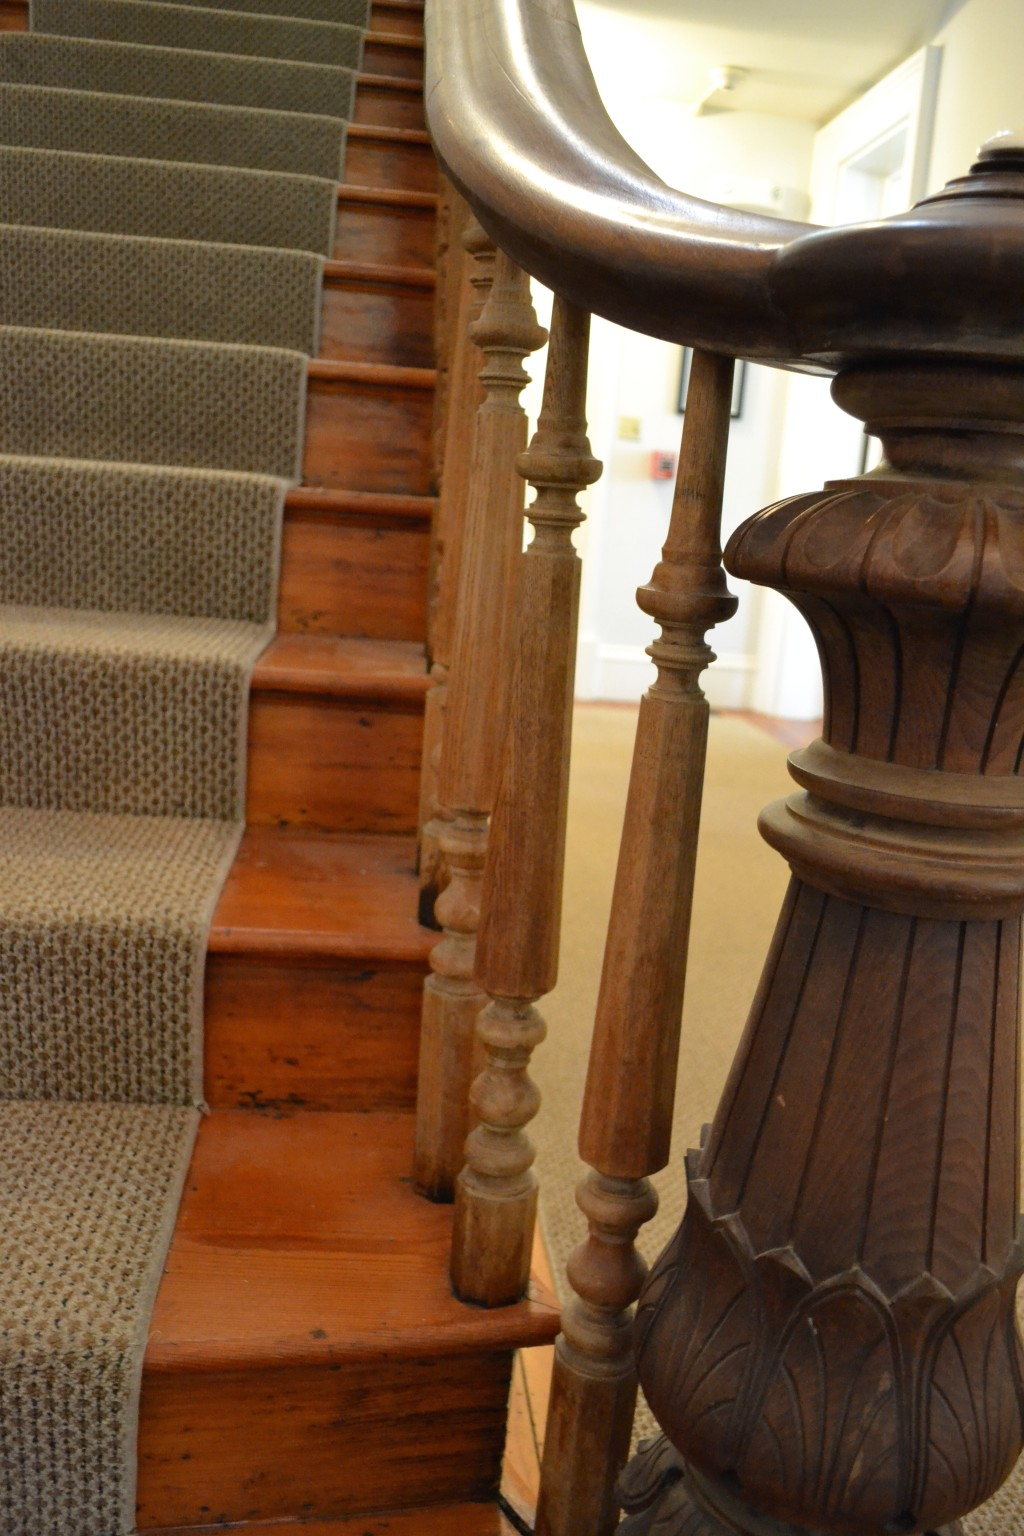 The solid wood newel post and ballisters.